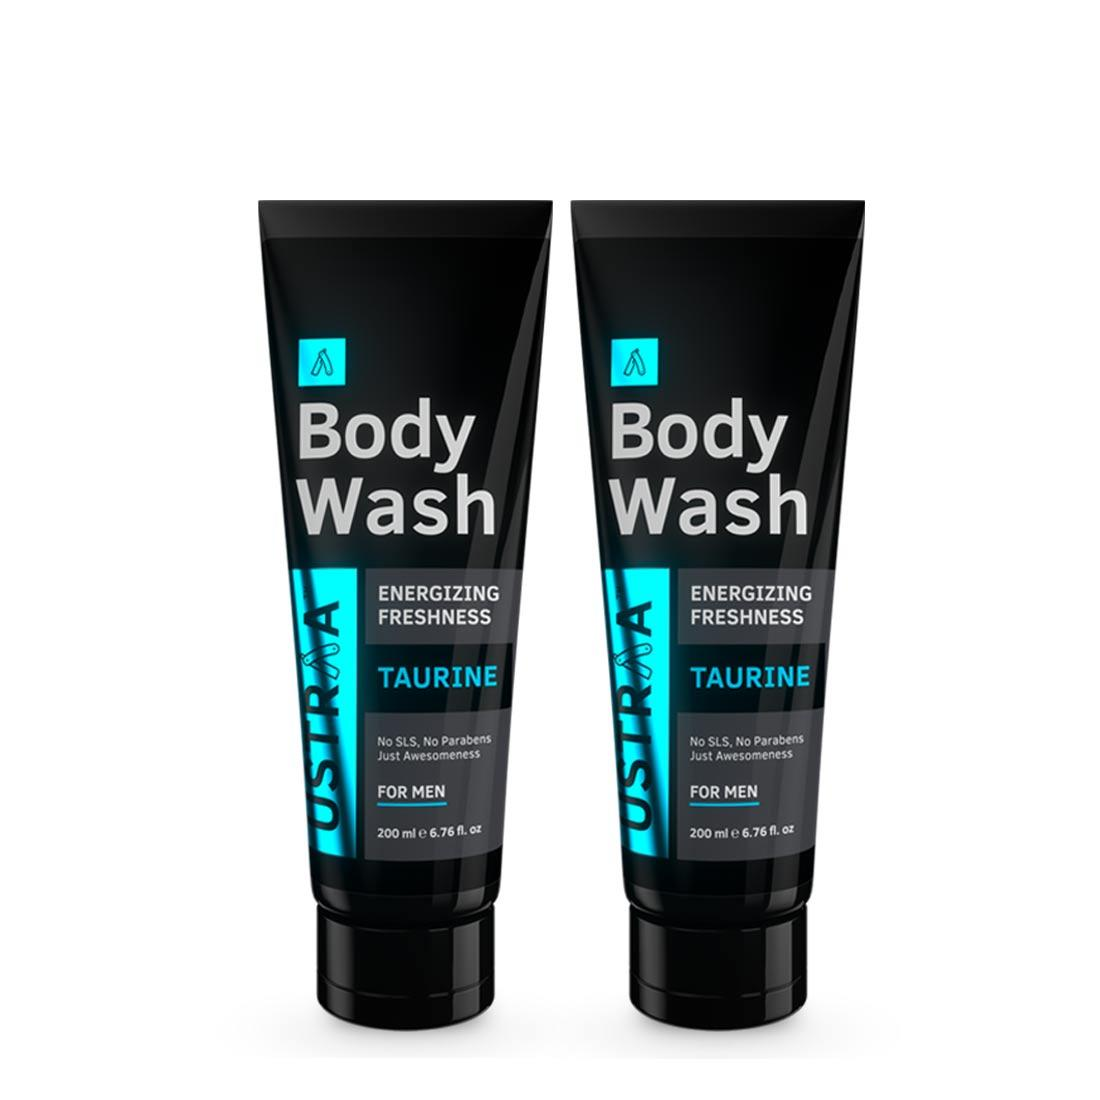 Ustraa Body Wash for Men: With Taurine for Energizing showers and Skin Damage Repair